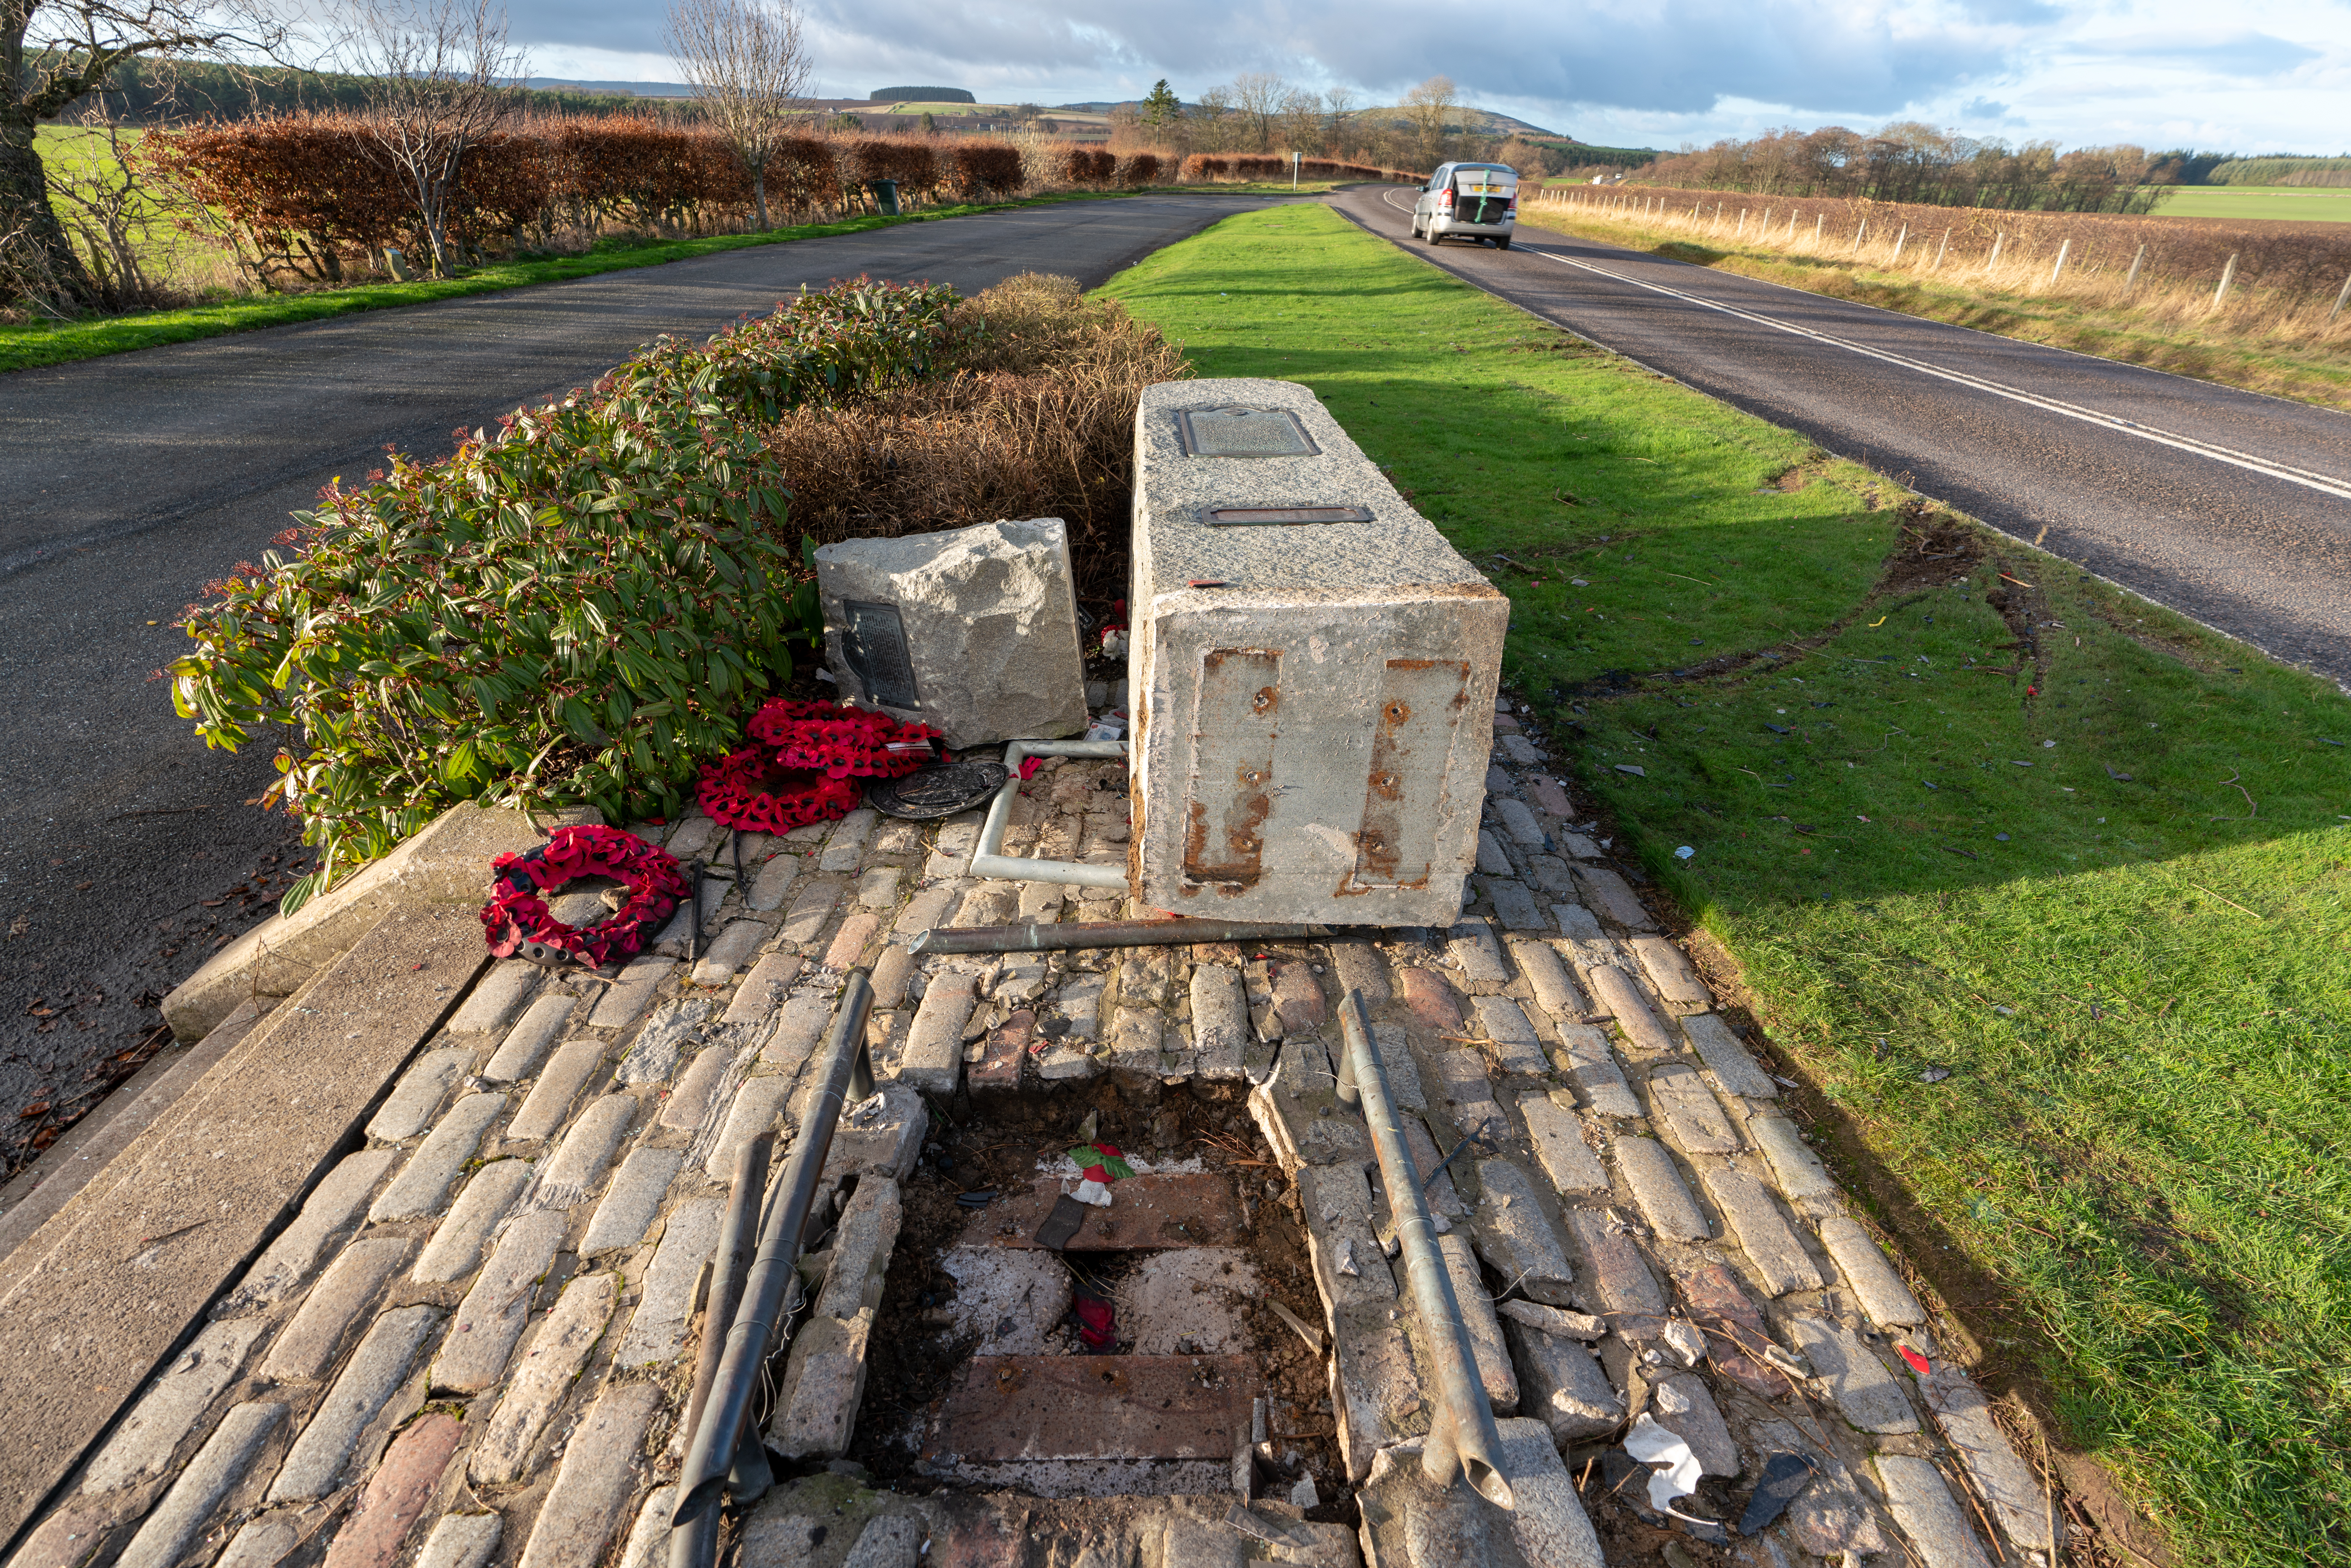 This is a picture from the scene of the WW11 RAF Banff Strike Wing Memorial at Boyndie, between Portsoy and Banff on a lay by at the A98 in Aberdeenshire, Scotland. The Monument has been hit by a vehicle at speed, knocking it from iots mounting and making t turn in 90 deg. It would appear to have been hit by a Red coloured vehicle. Photographed by JASPERIMAGE ©.